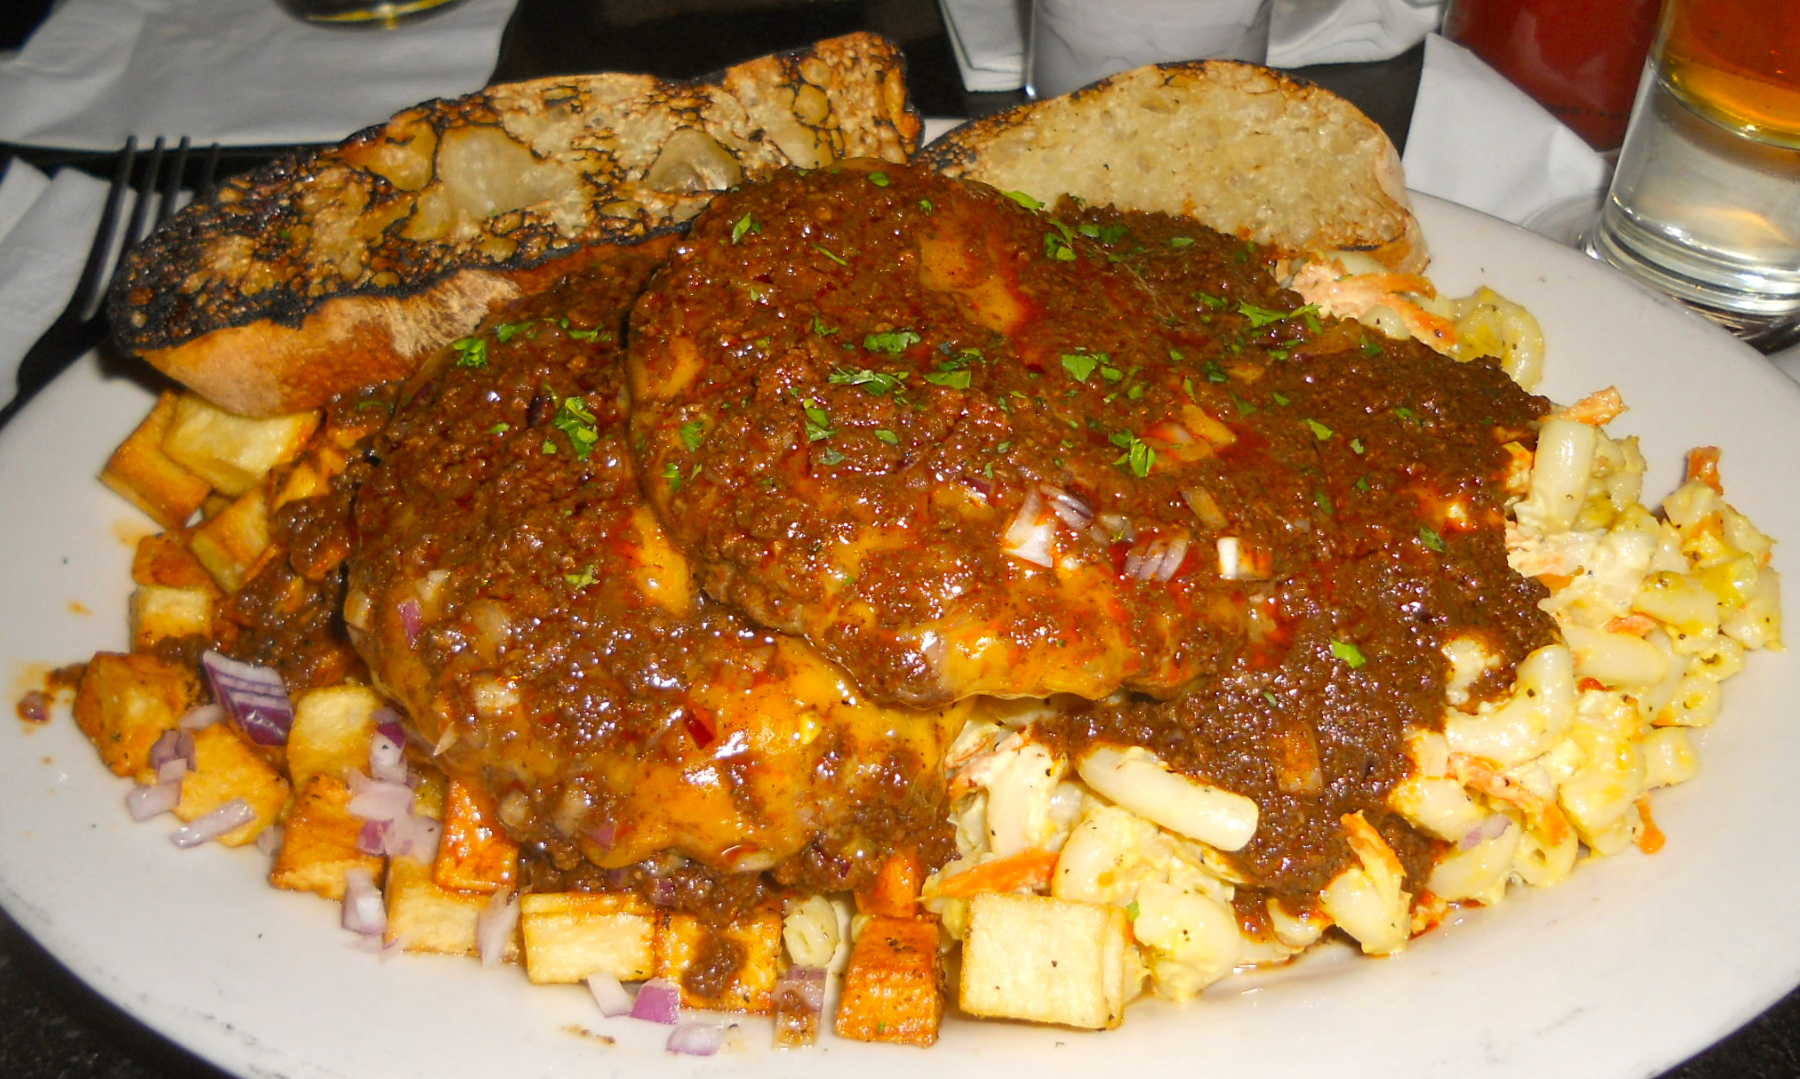 Rochester garbage plate and iraqi cuisine in nyc united for Cuisine york